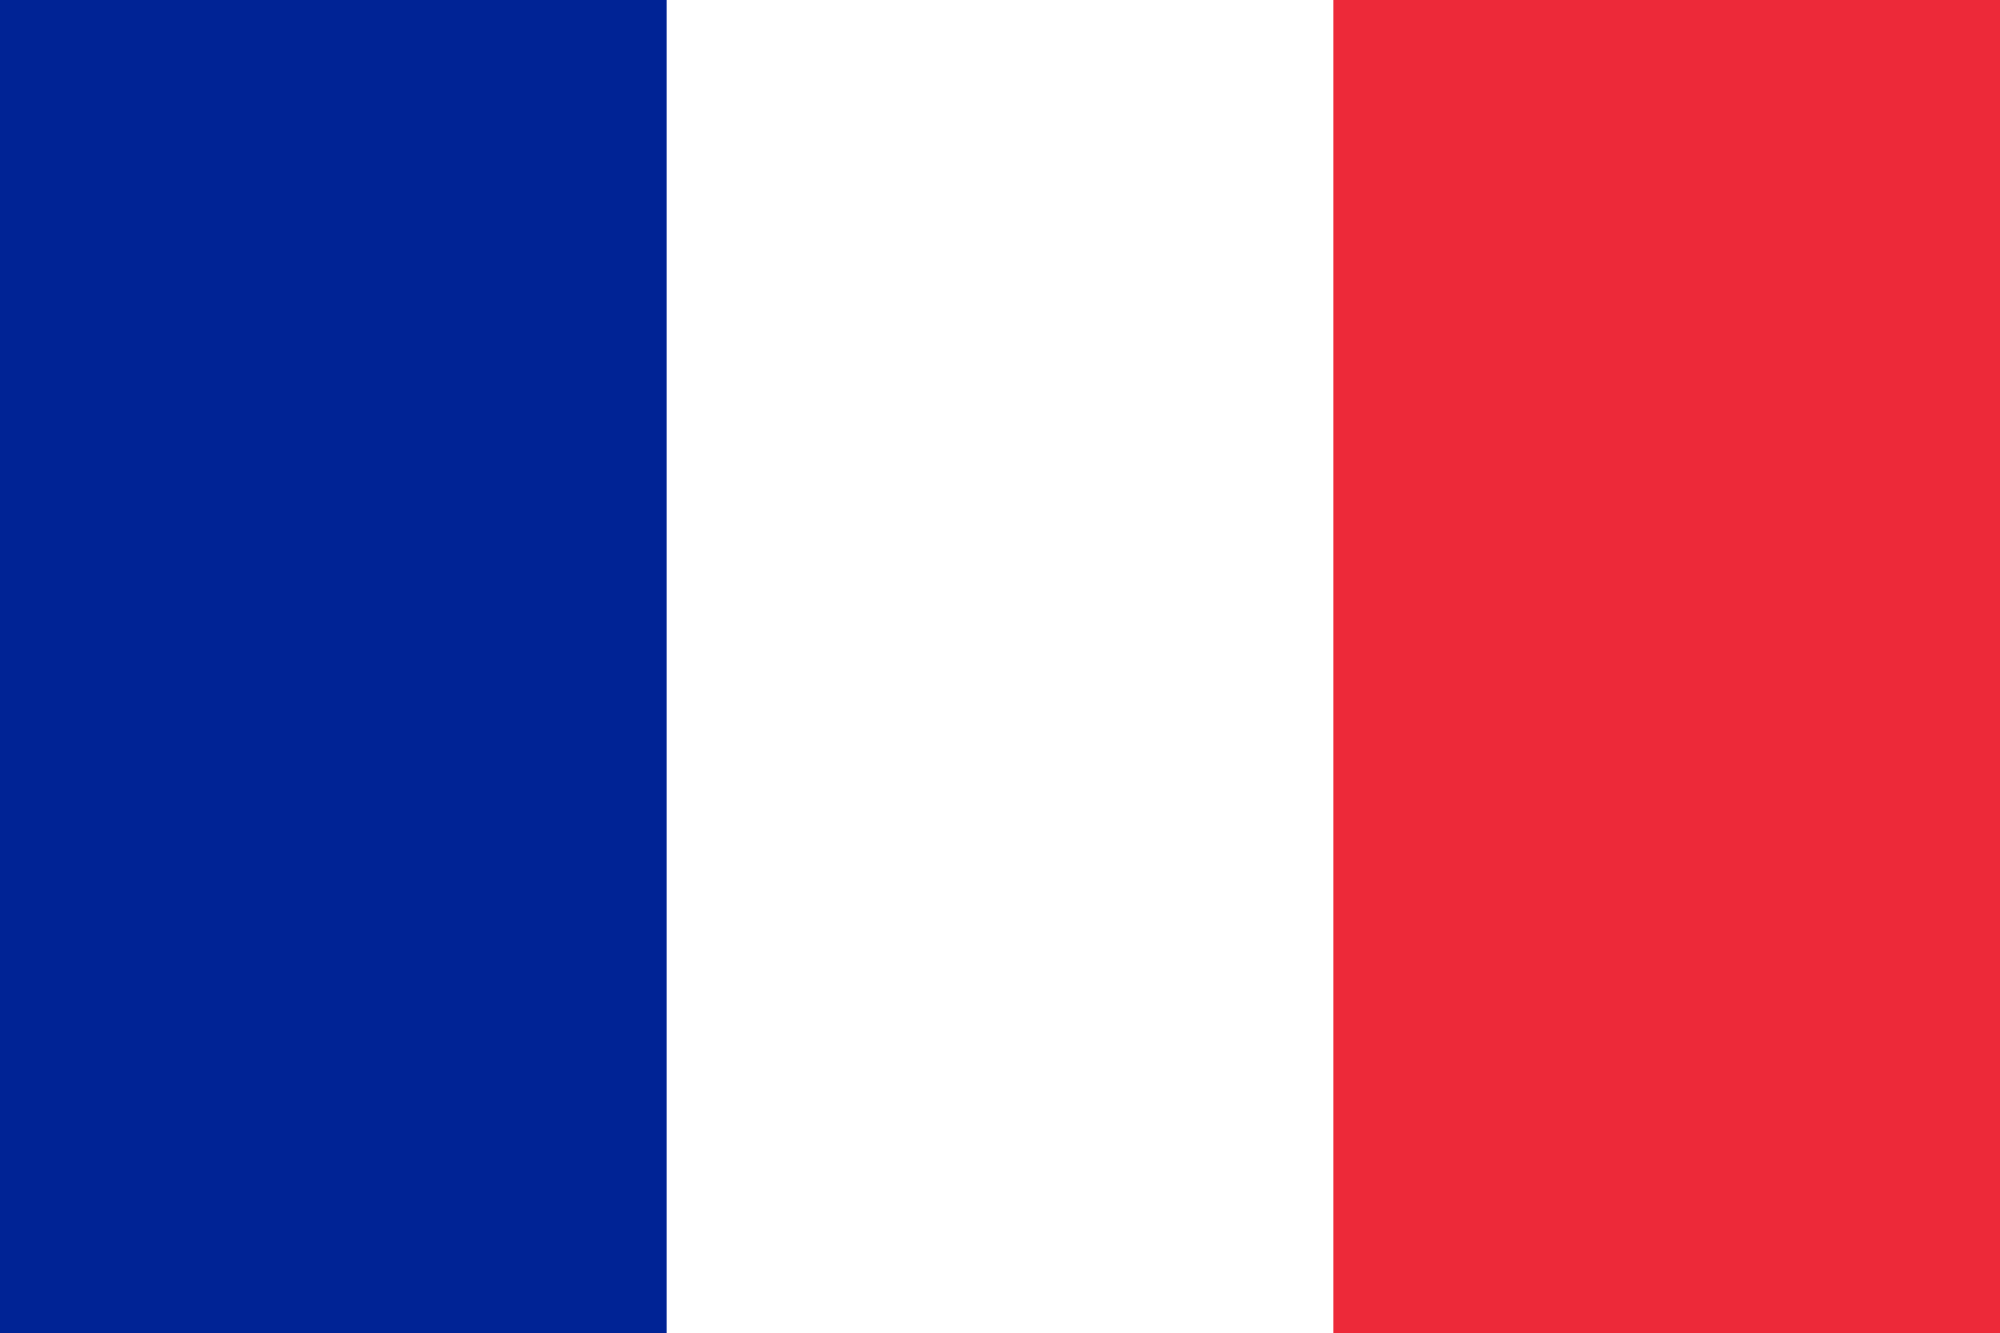 The French National Flag